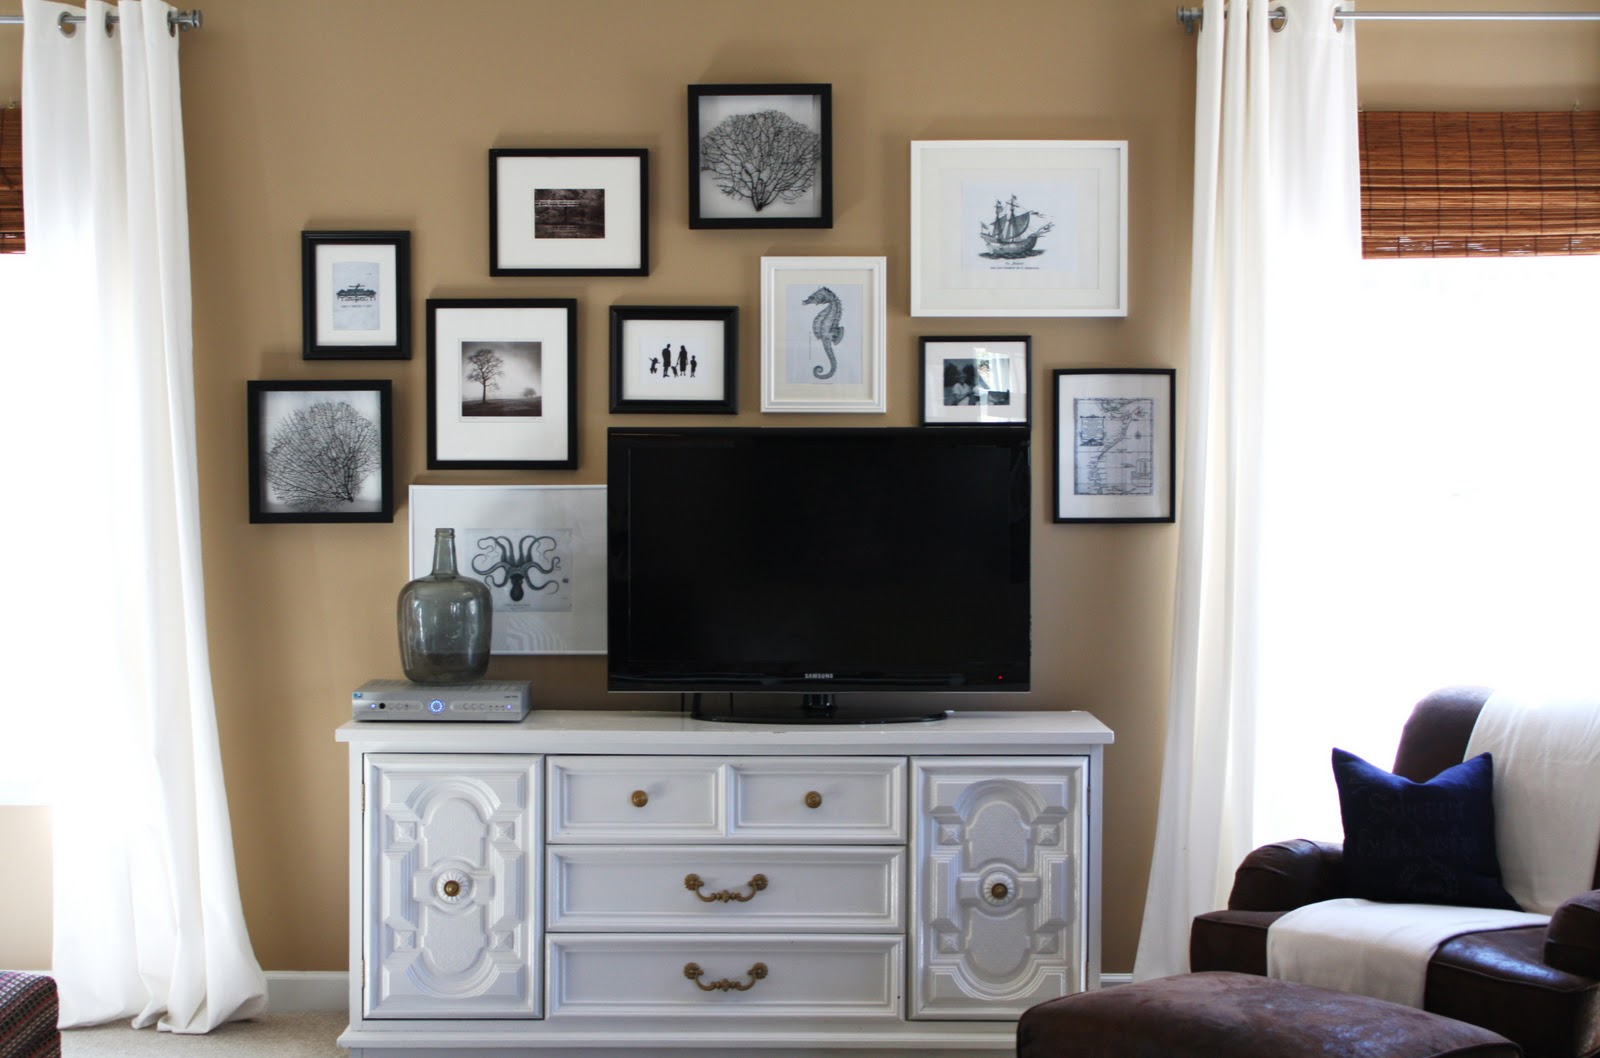 By Using A Grouping Of Black And White Framed Art The Flat Screen Becomes Part